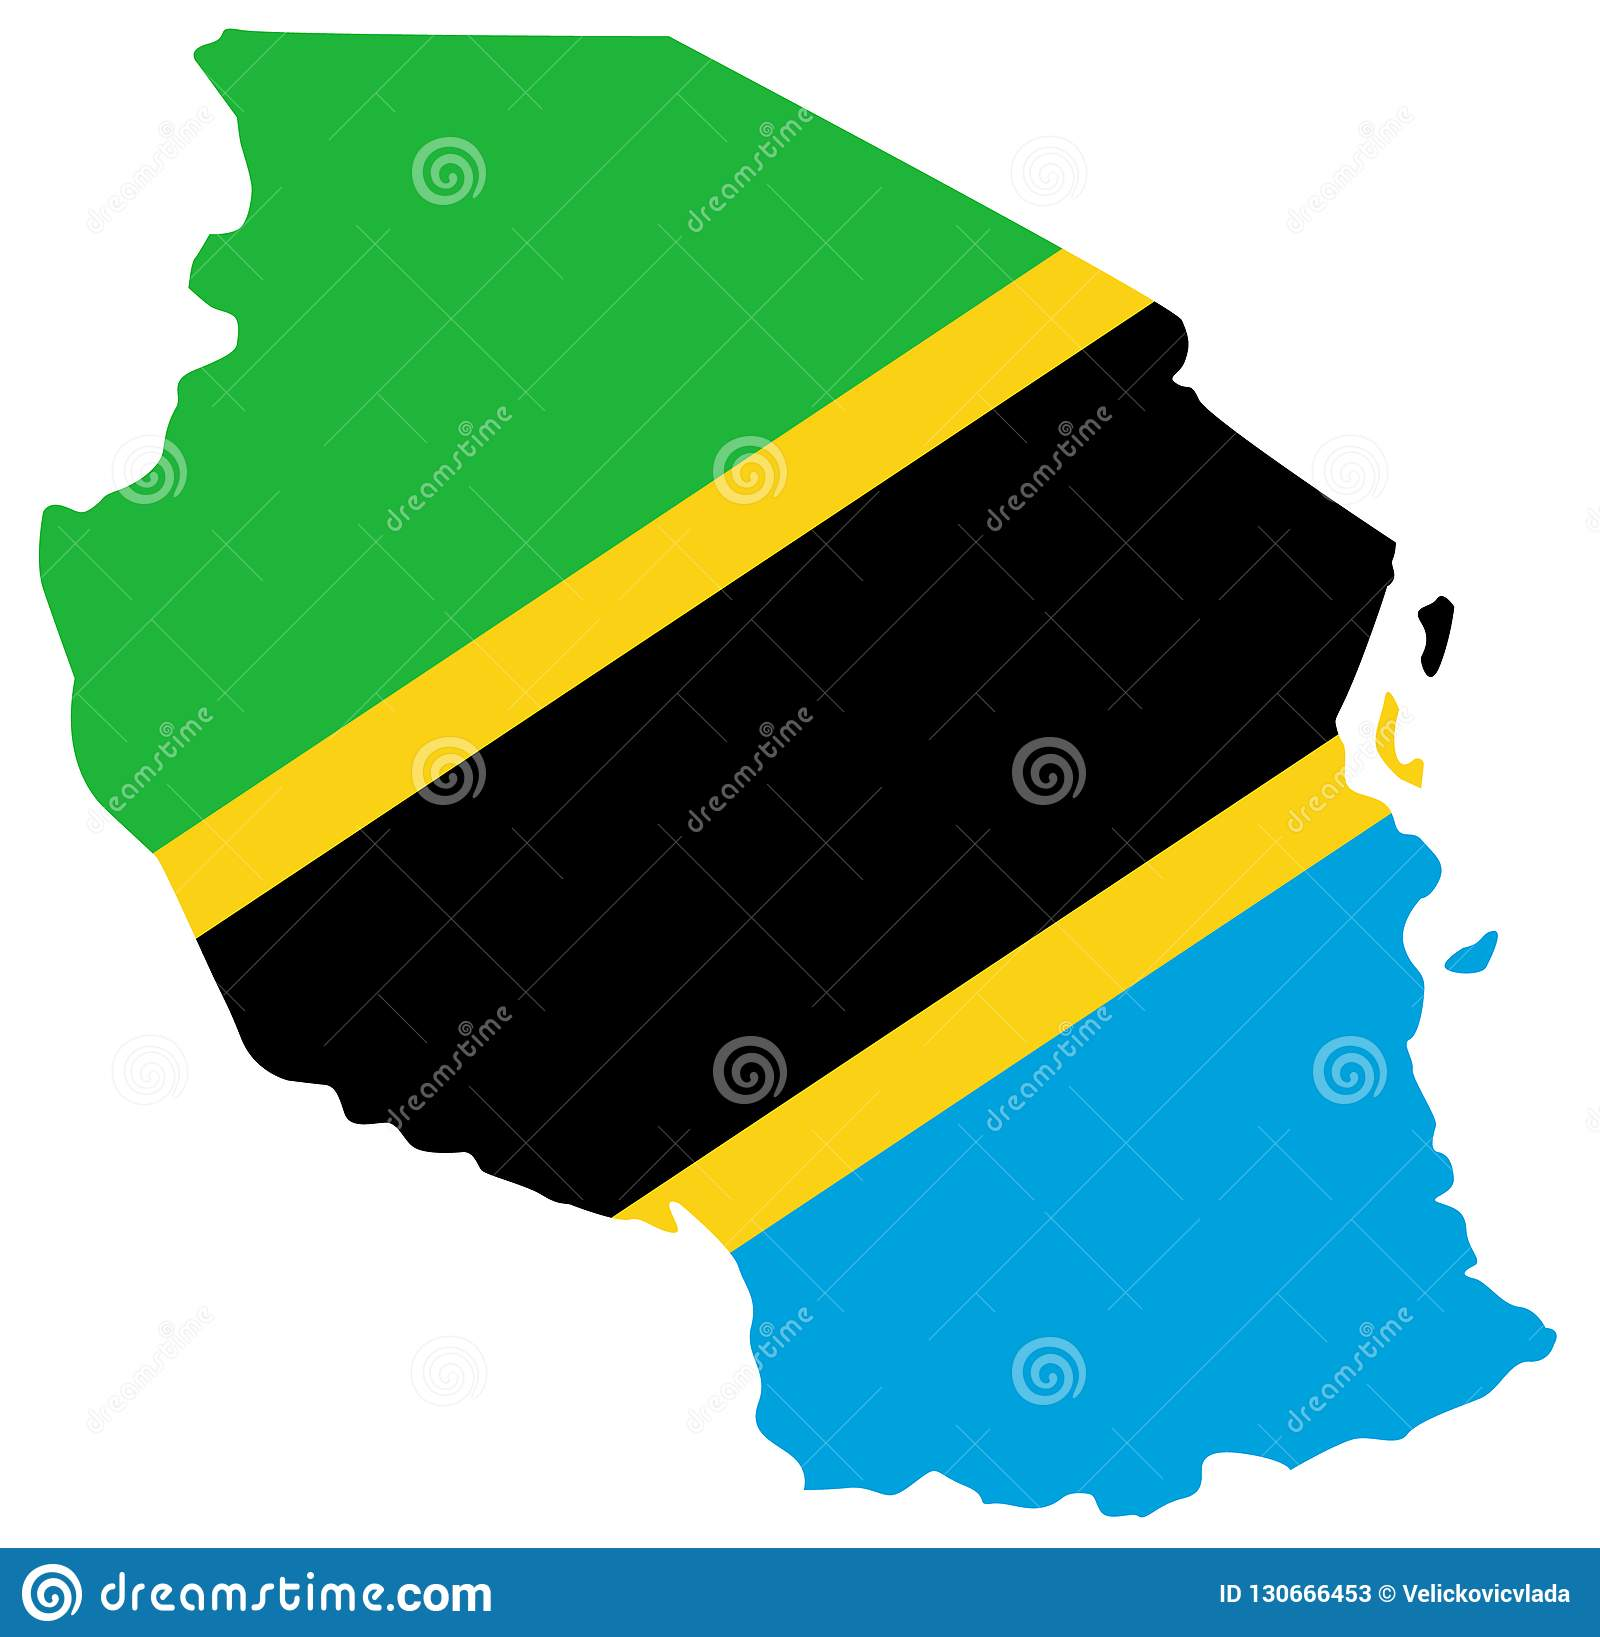 Tanzania On Africa Map.Tanzania Flag And Map Country In Eastern Africa Within The African